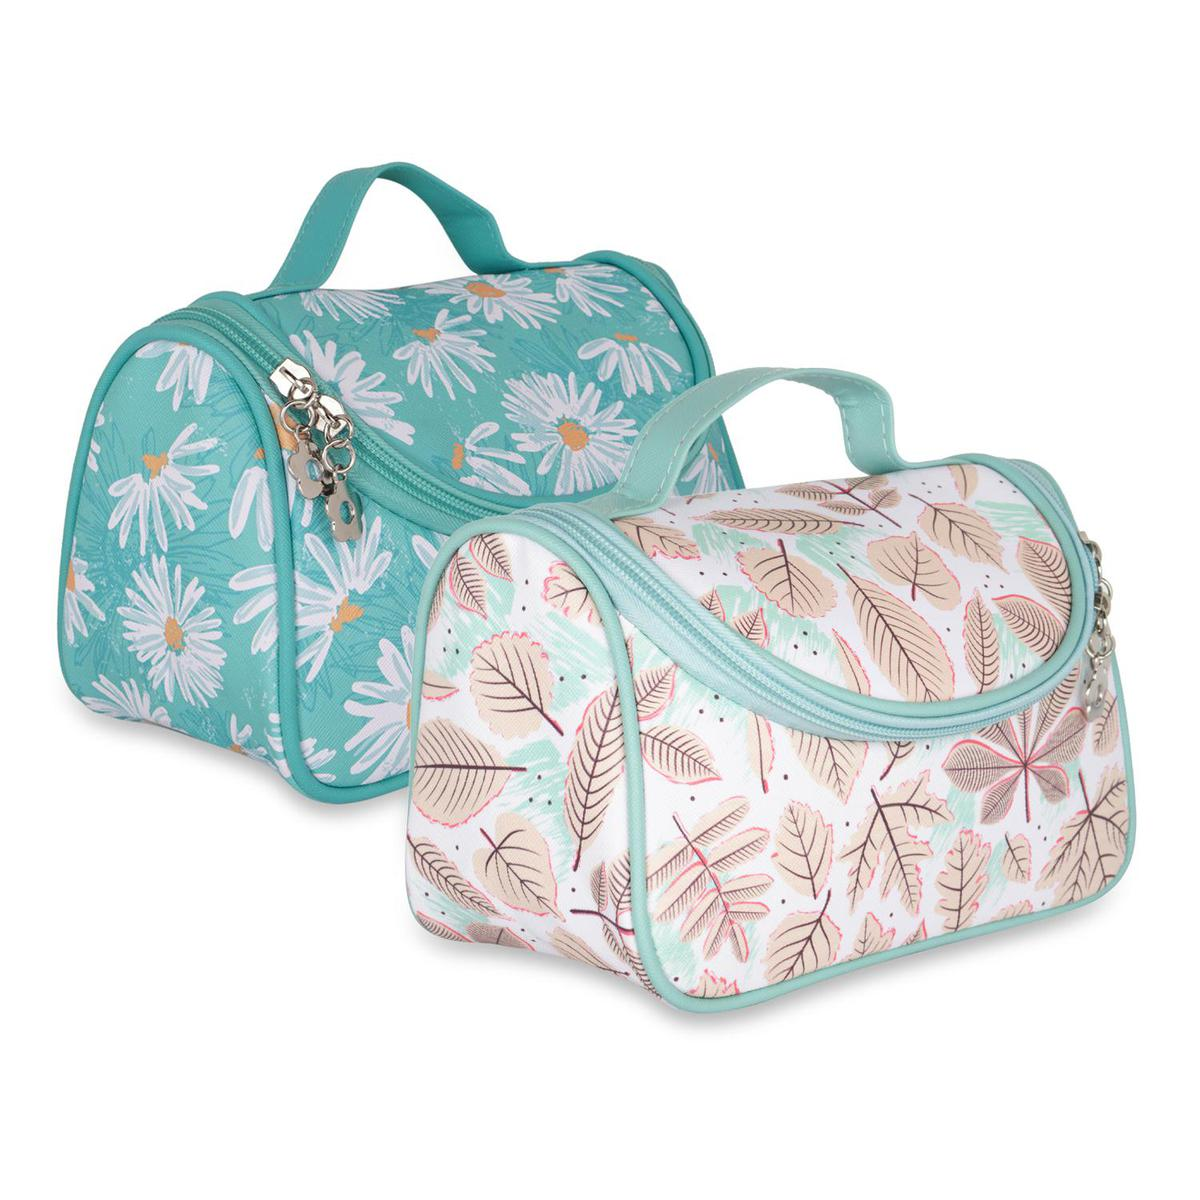 NFI essentials - Floral Print Cosmetics Pouch Makeup Pouch  Vanity Case Jewellery Pouch Stationery Pencil Case  Travel Organiser Travel Pouch Bridal Gift Pack of 2